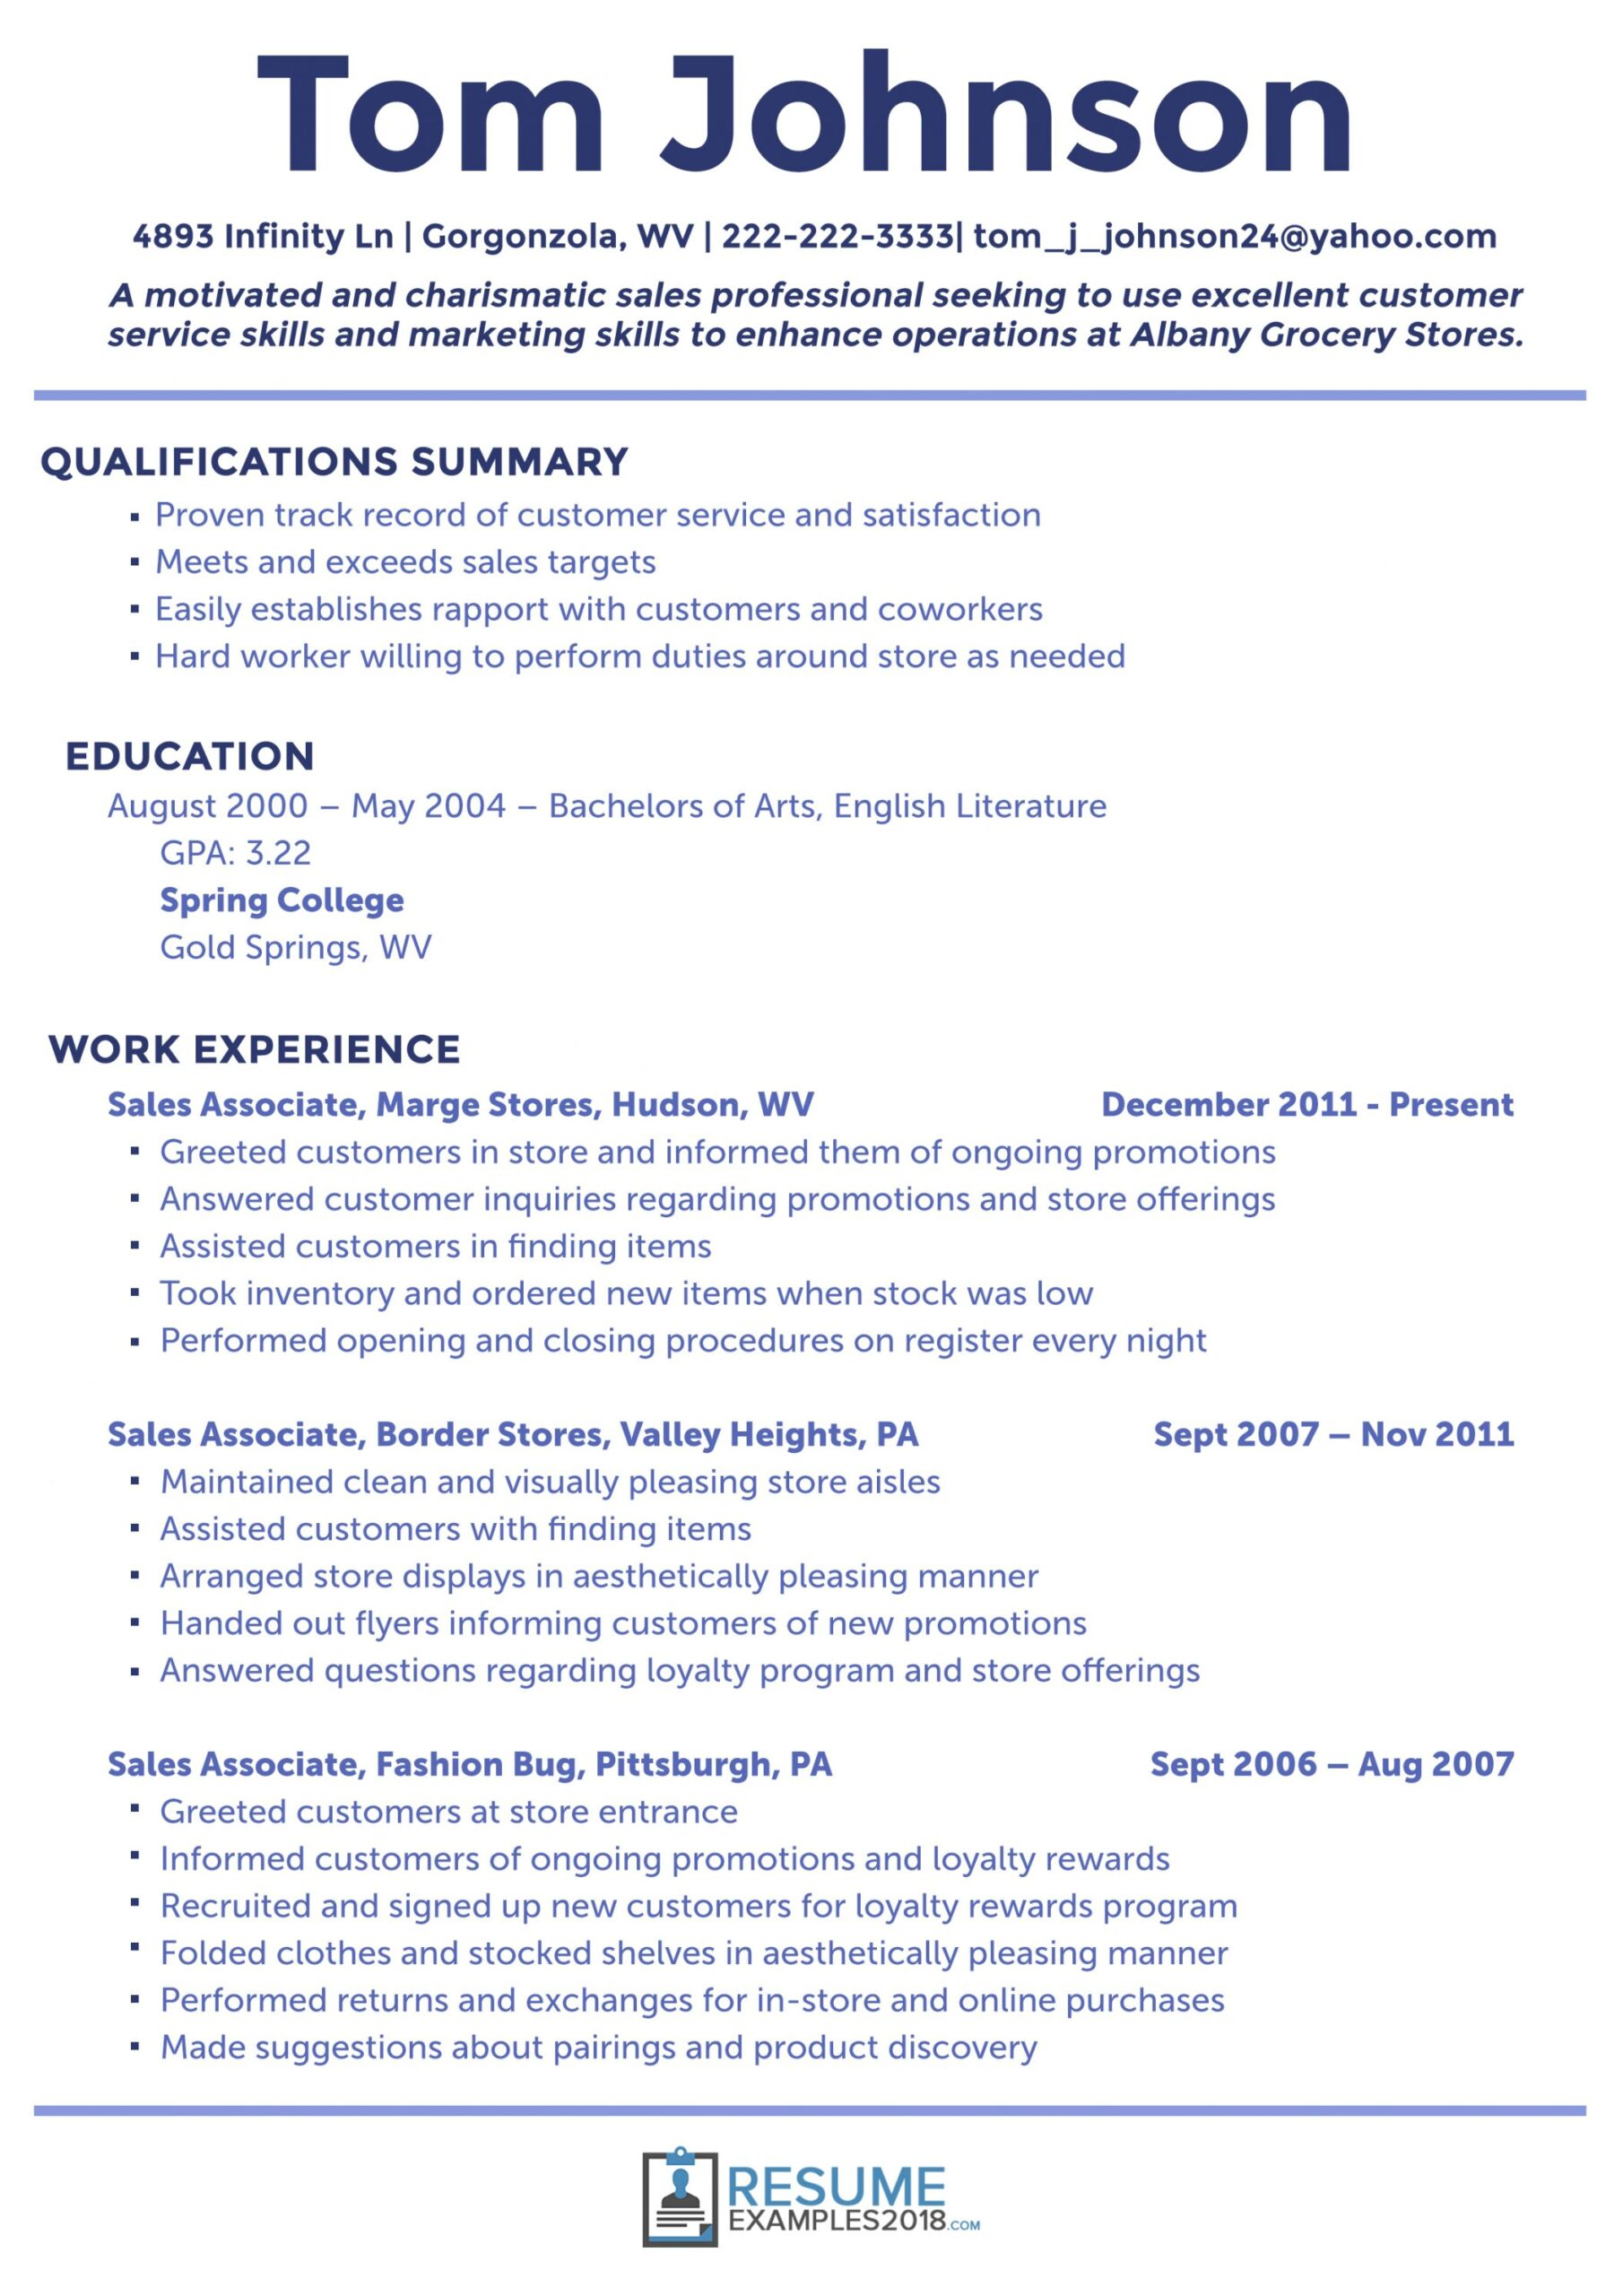 resume format suggestions best writing tips entry level pc technician marketing Resume Resume Writing Tips 2018